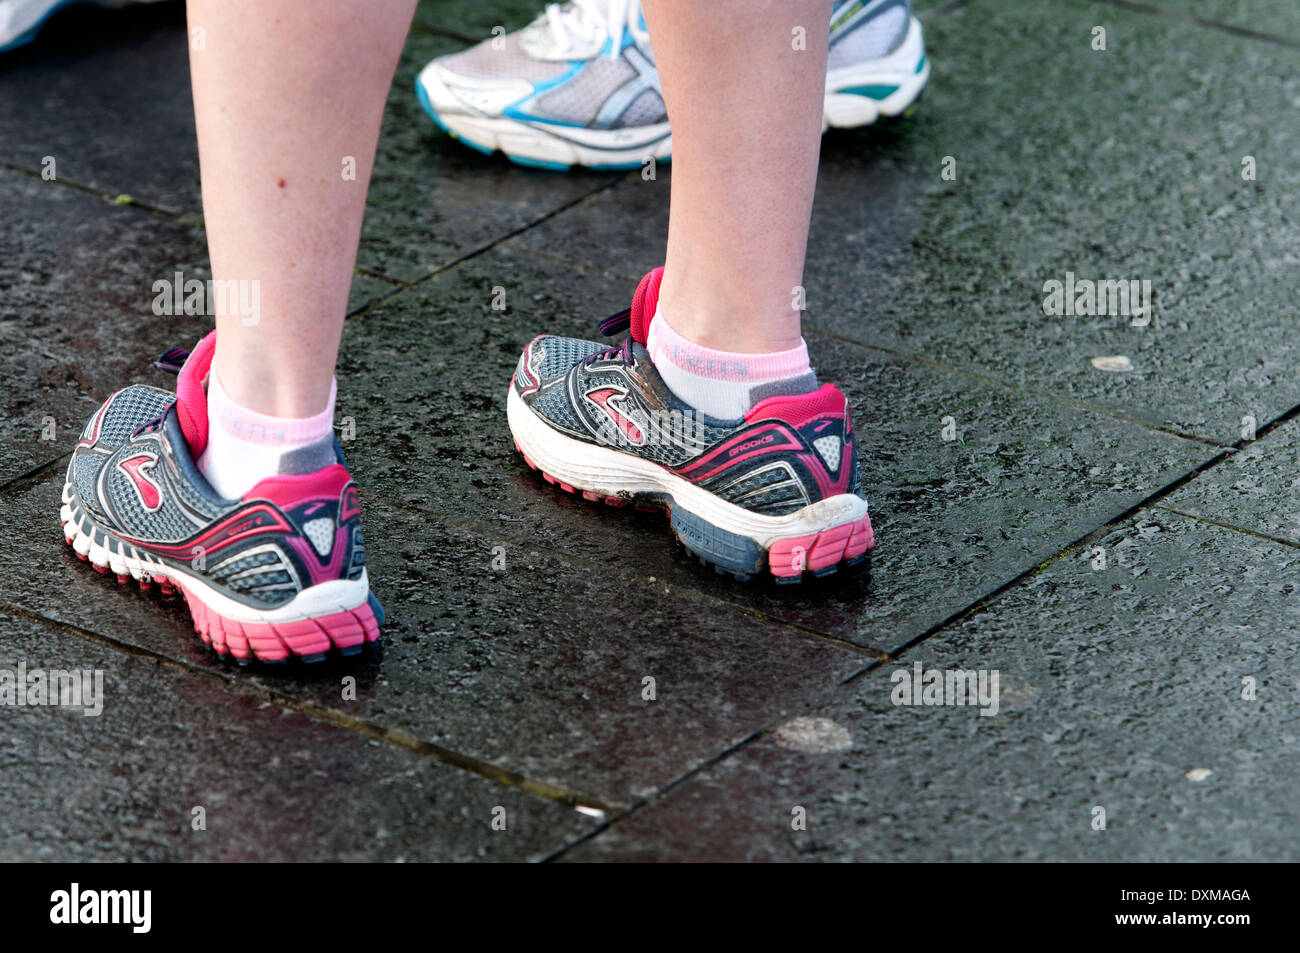 women runners shoes stock photos women runners shoes stock images